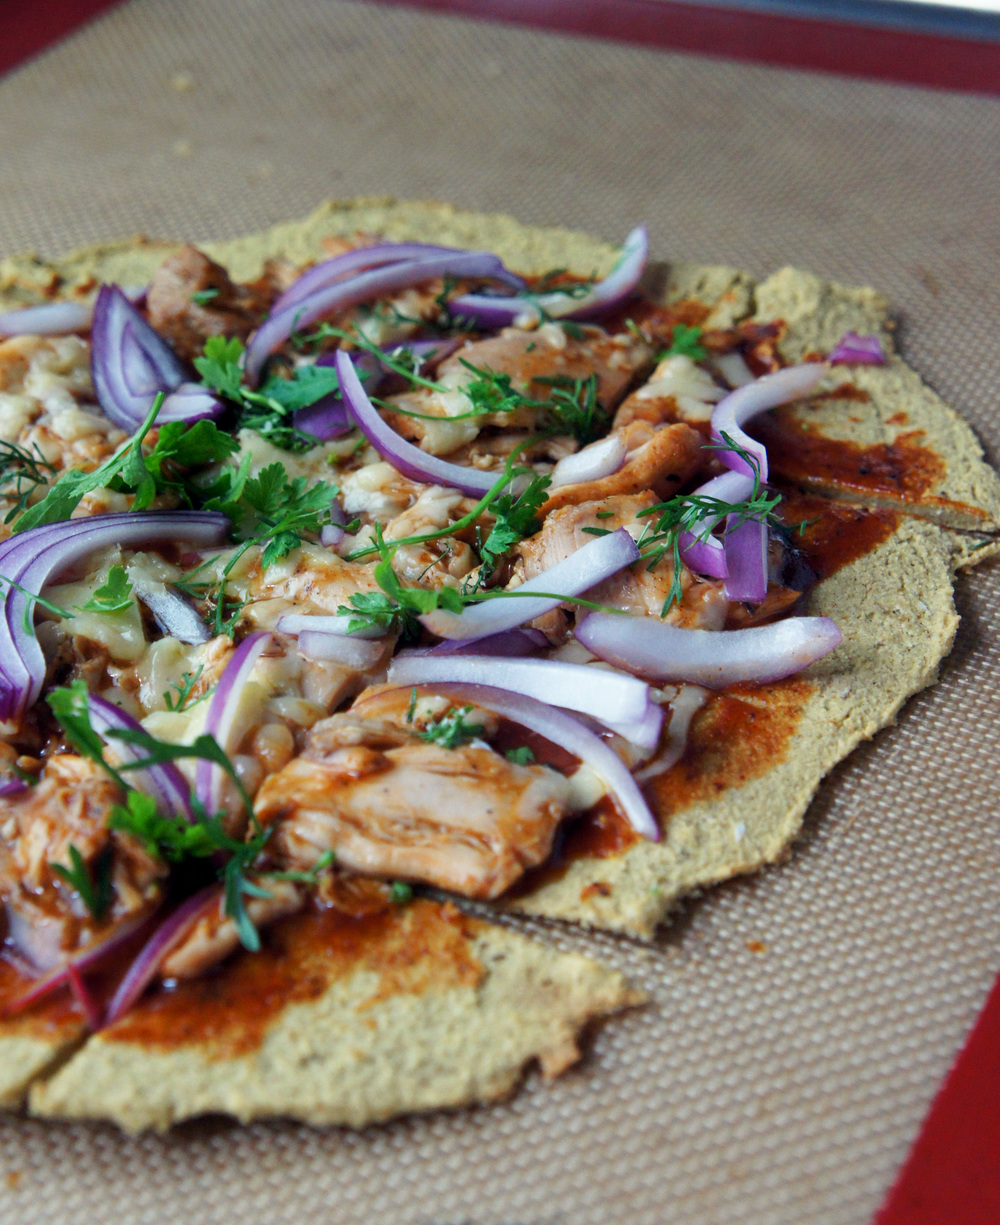 Nut-free paleo pizza crust, 2 ways! (No cauliflower included…)